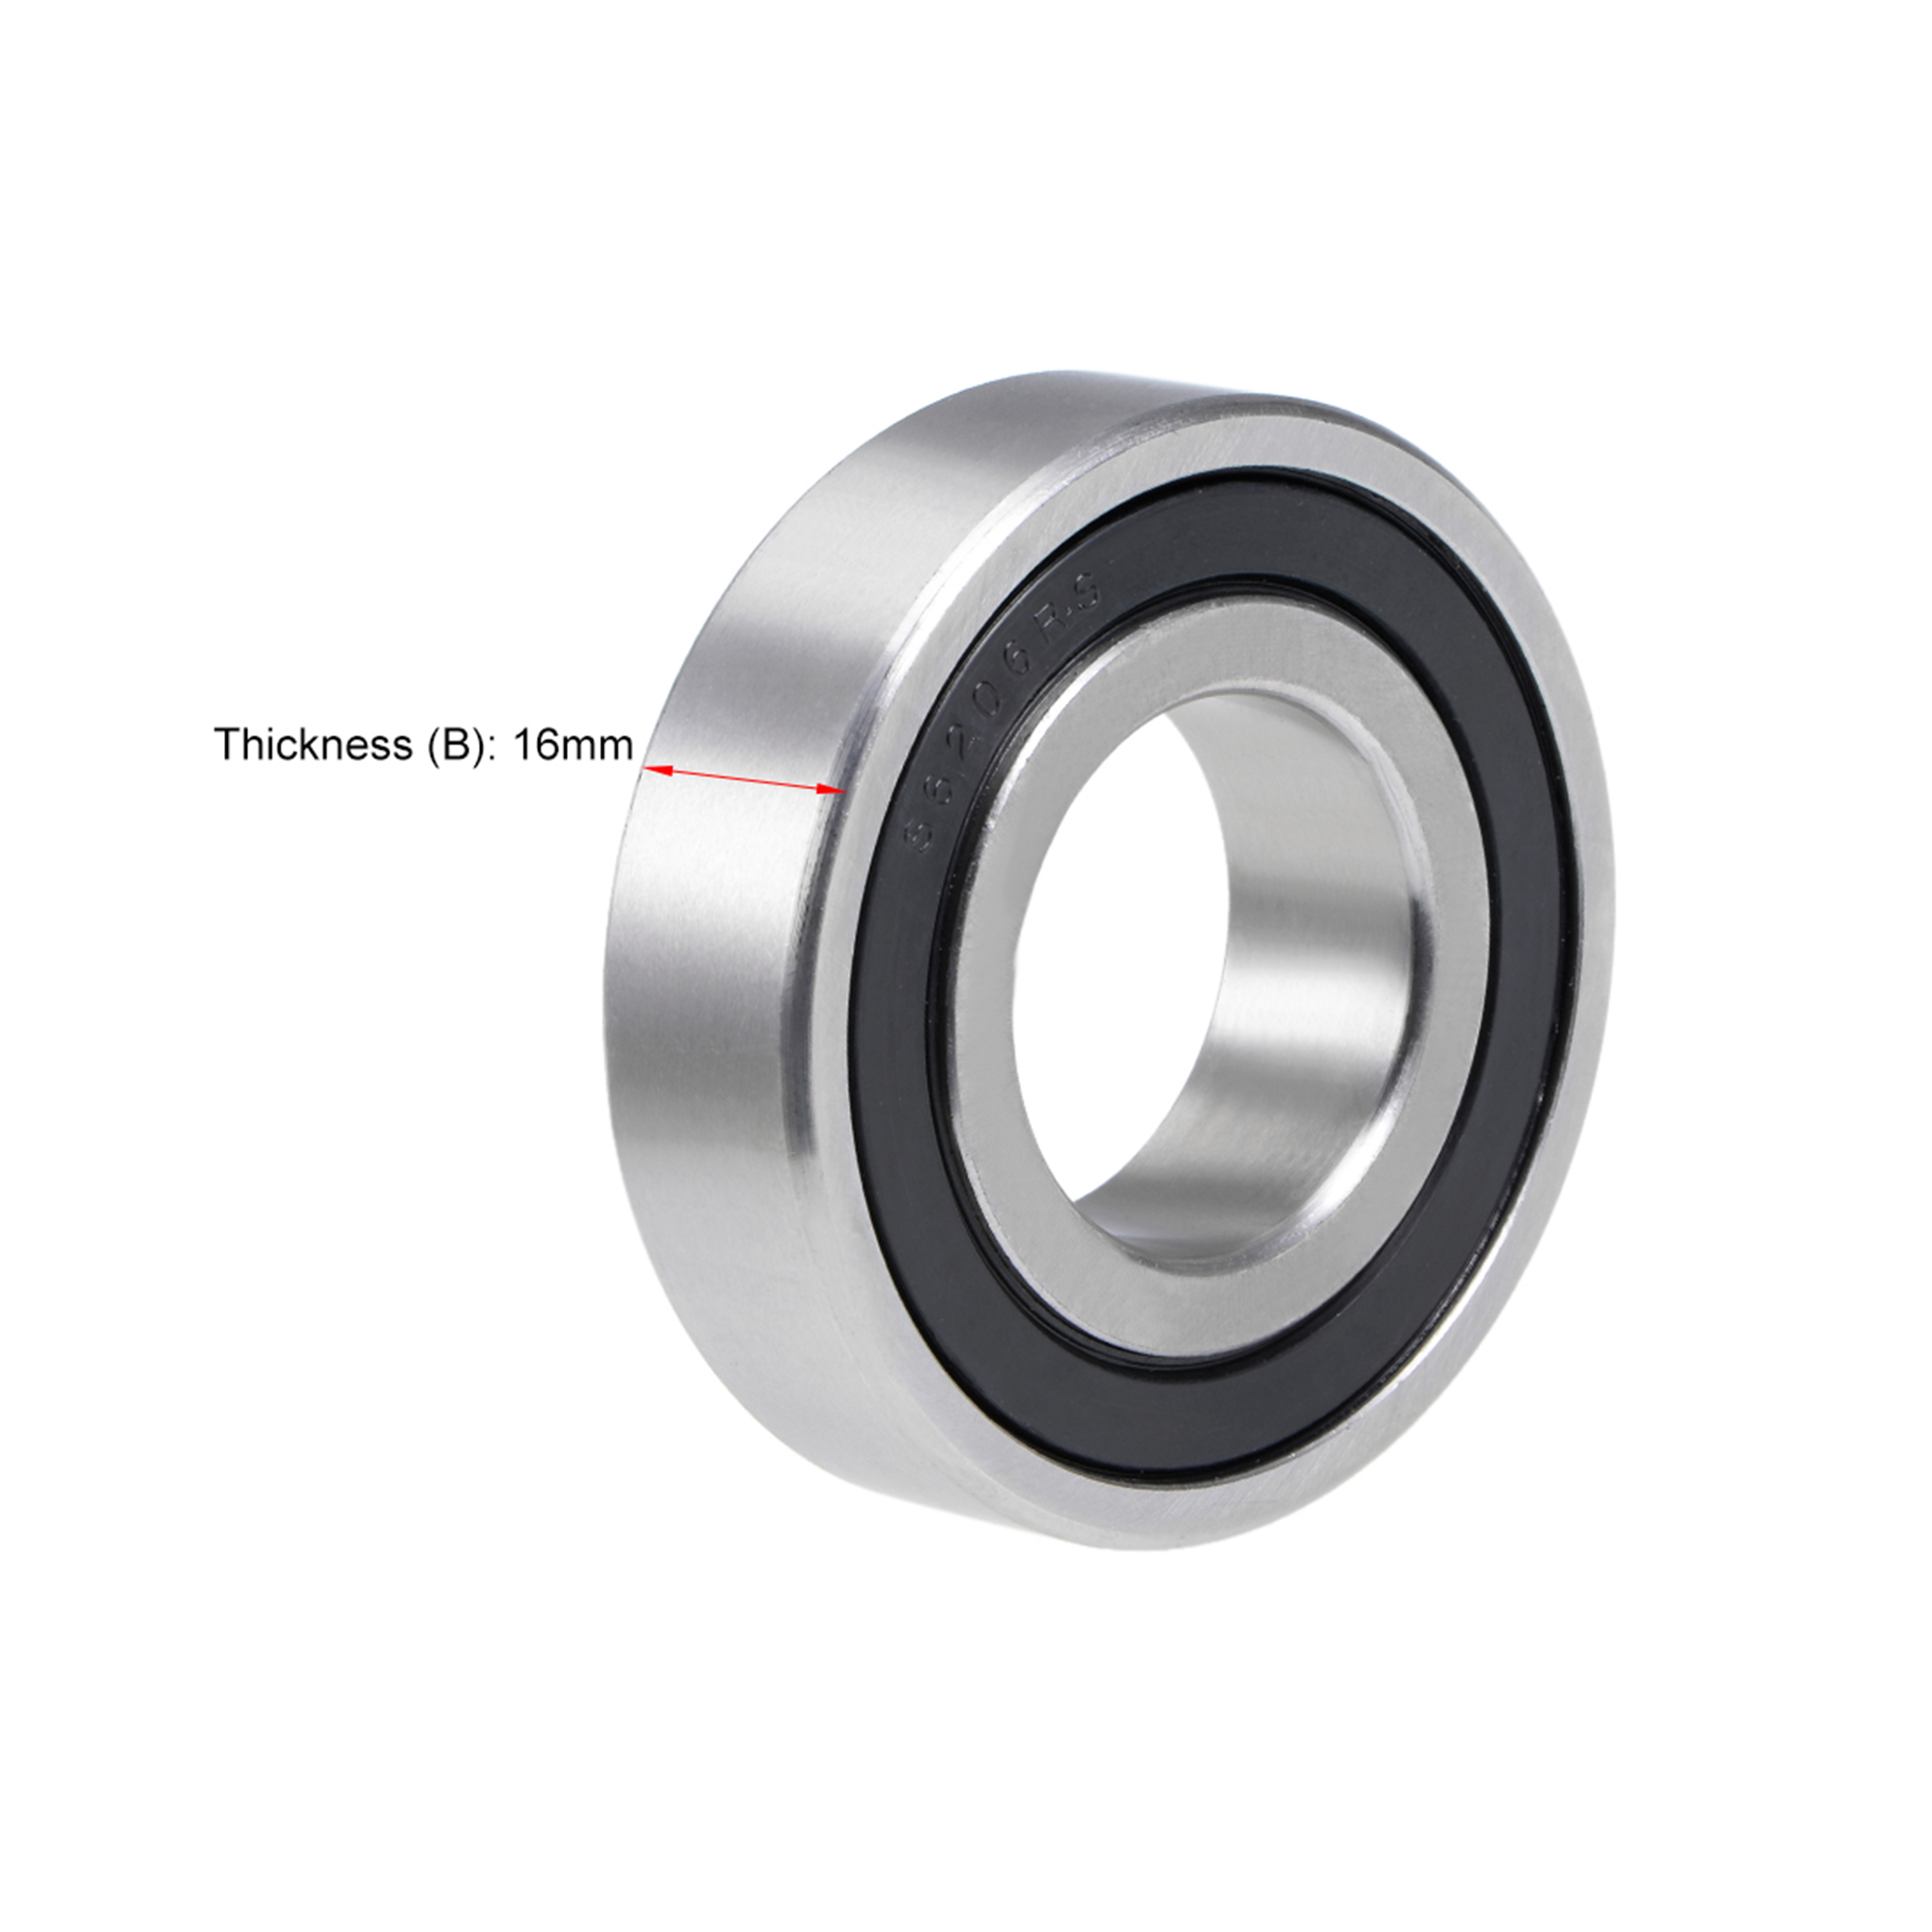 SS6206-2RS Stainless Steel Bearing S6206-2RS